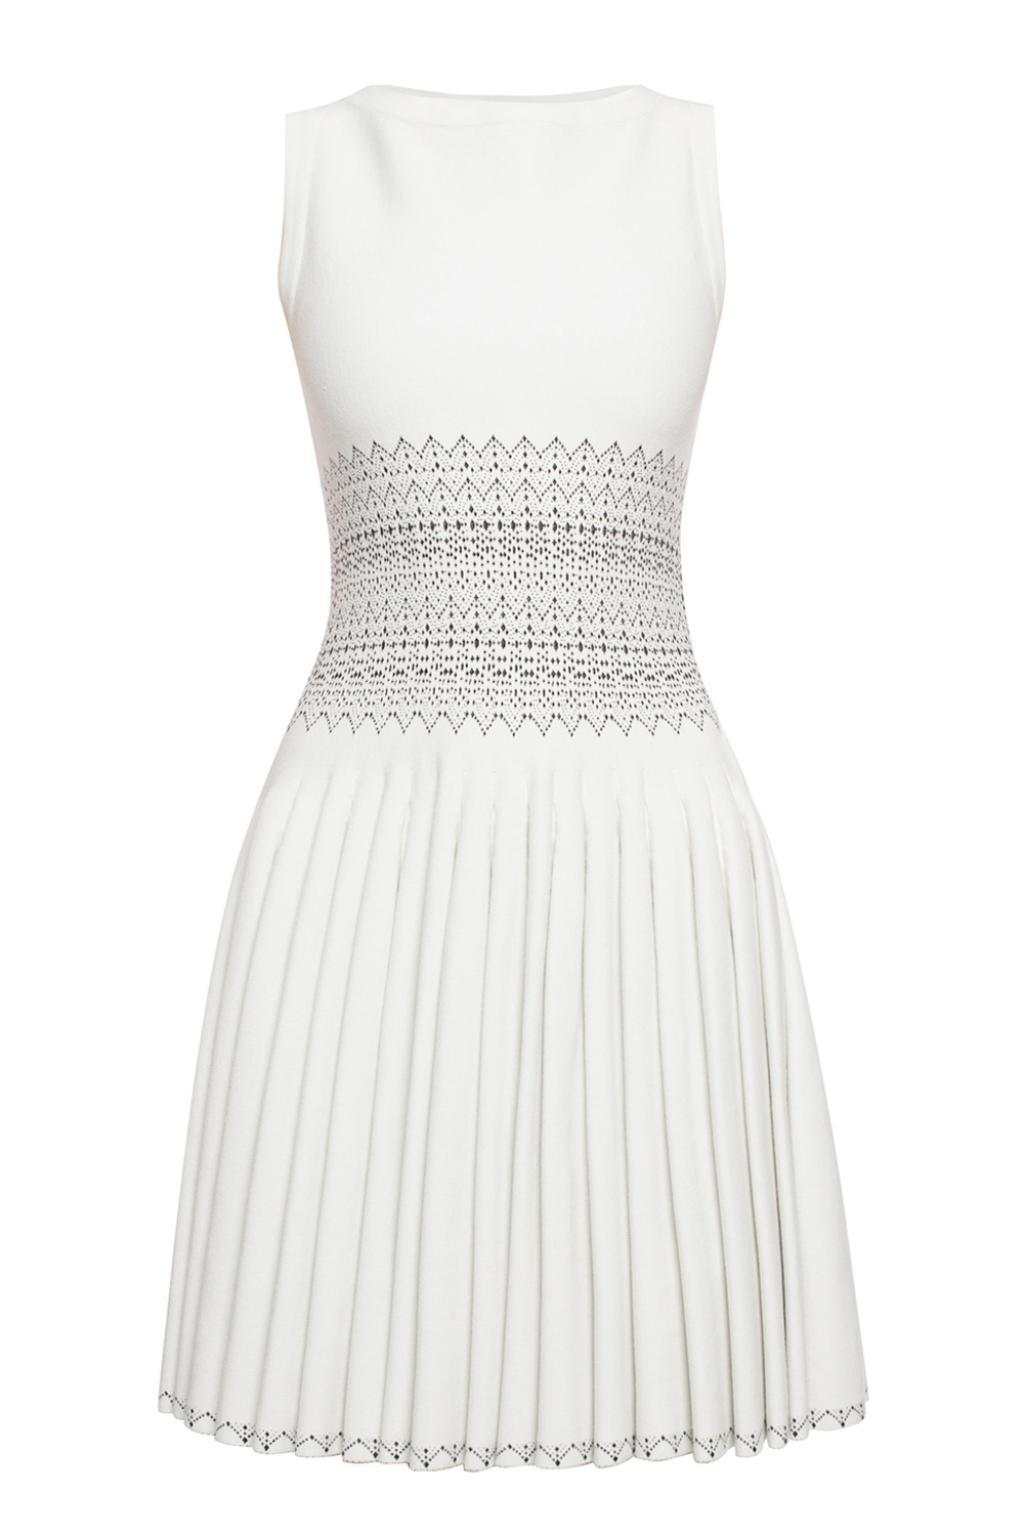 bf80fe6103b Lyst - Alaïa Embroidered Dress in White